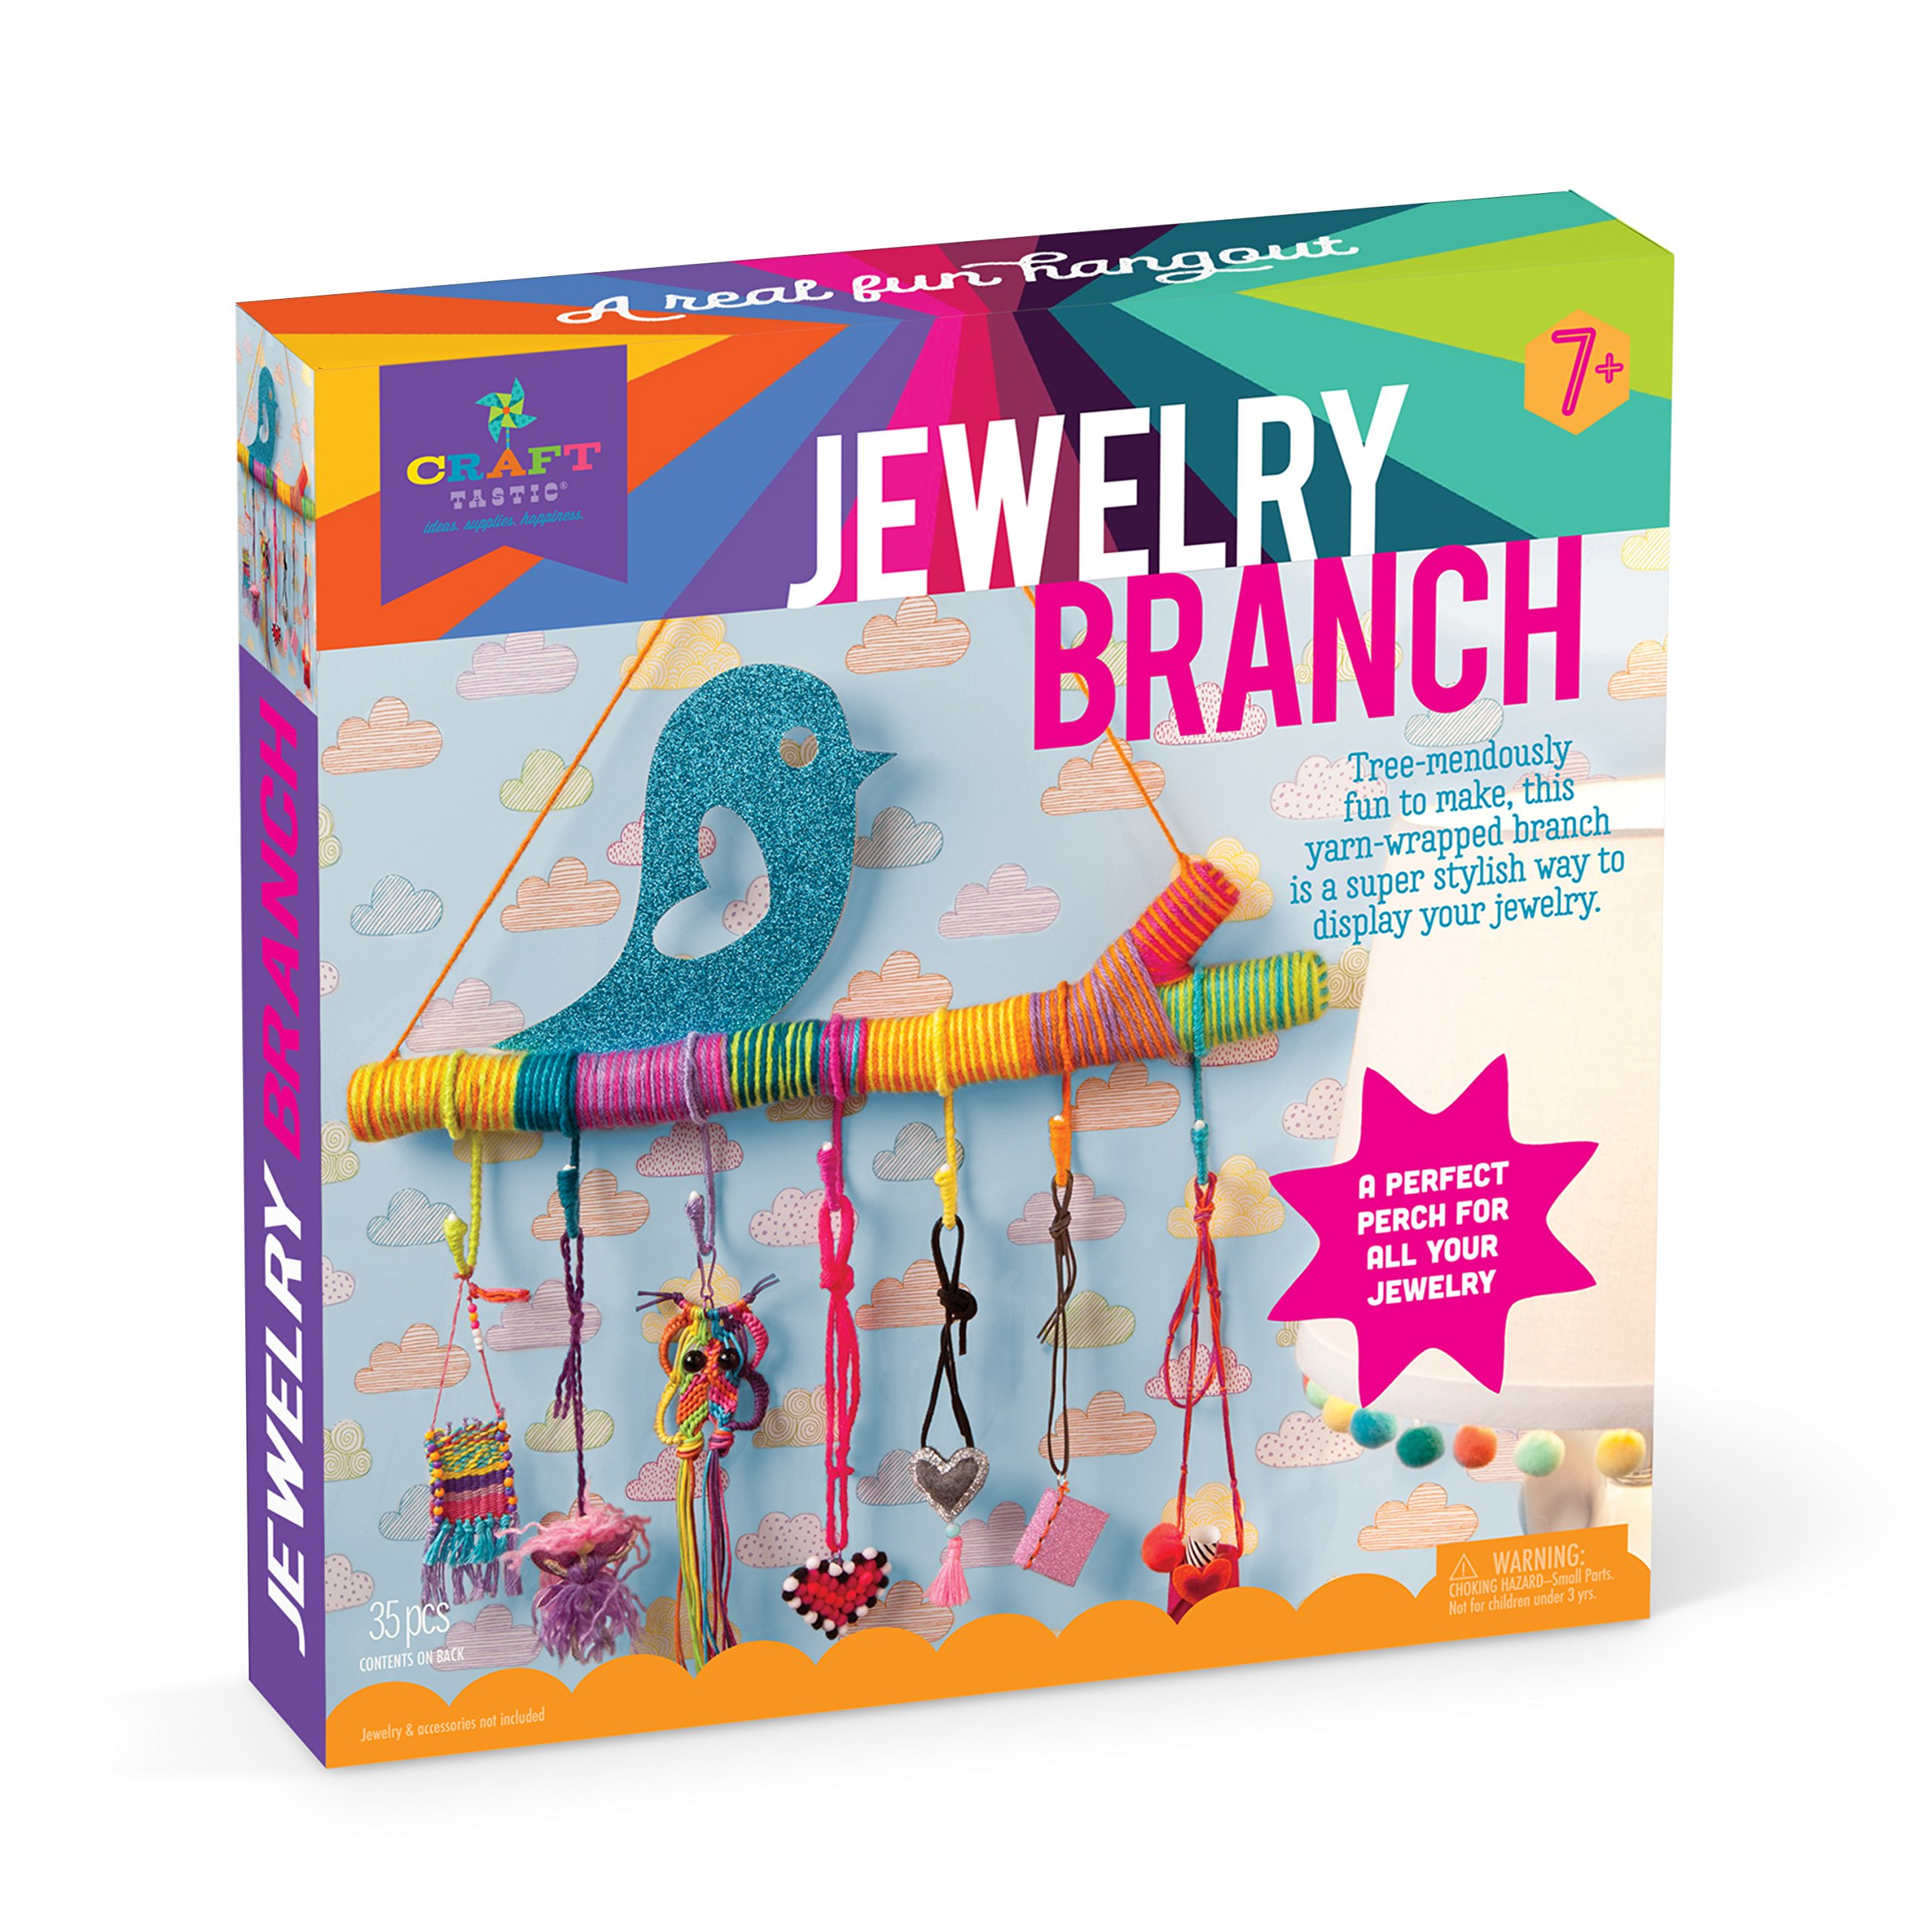 Craft-tastic - Jewelry Branch Kit - Craft Kit Makes One 16'' Jewelry Holder by Craft-tastic